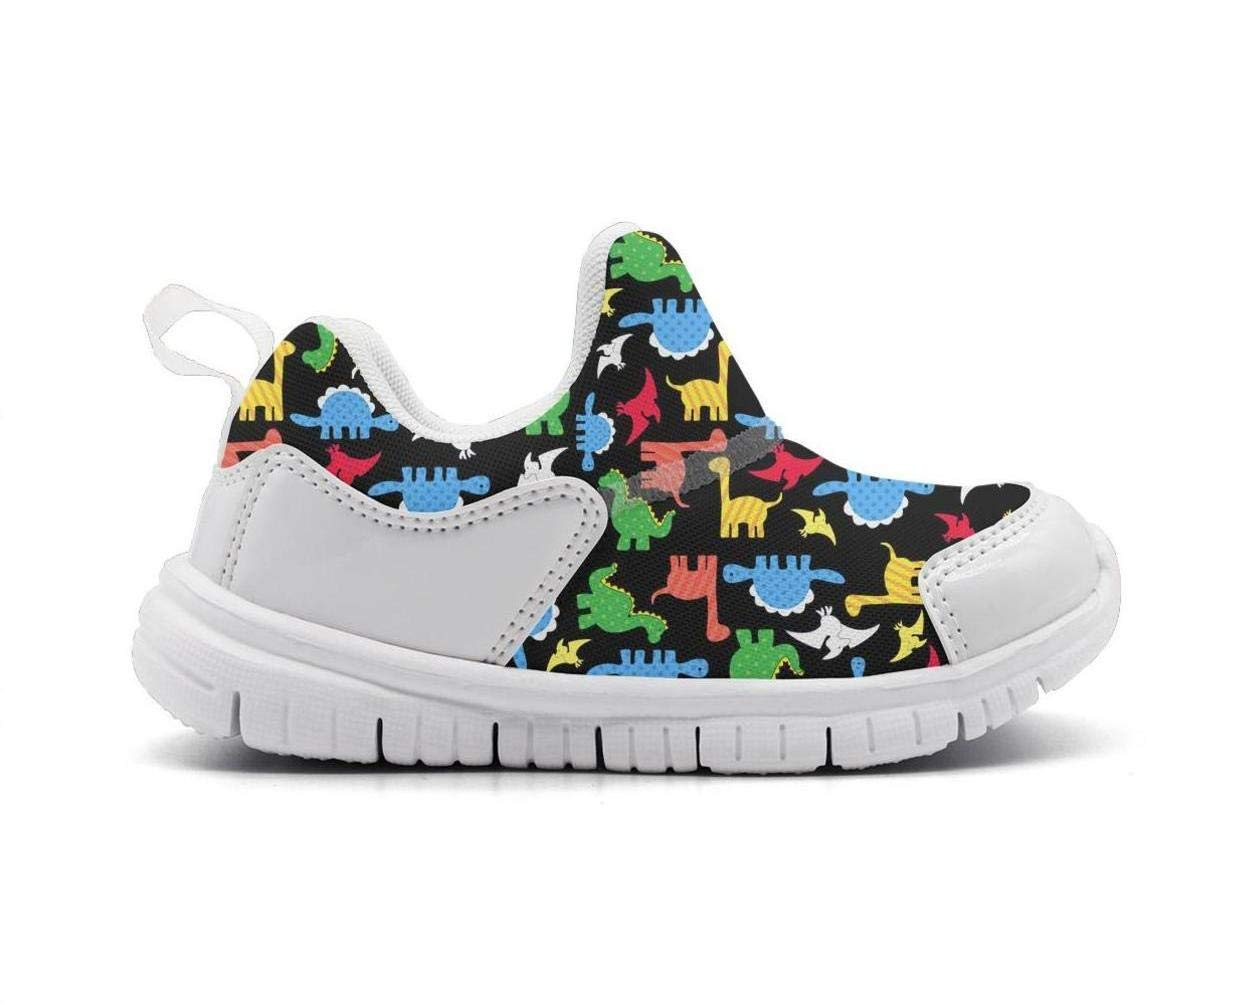 ONEYUAN Children The Dinosaurs Art Rainbow Kid Casual Lightweight Sport Shoes Sneakers Walking Athletic Shoes